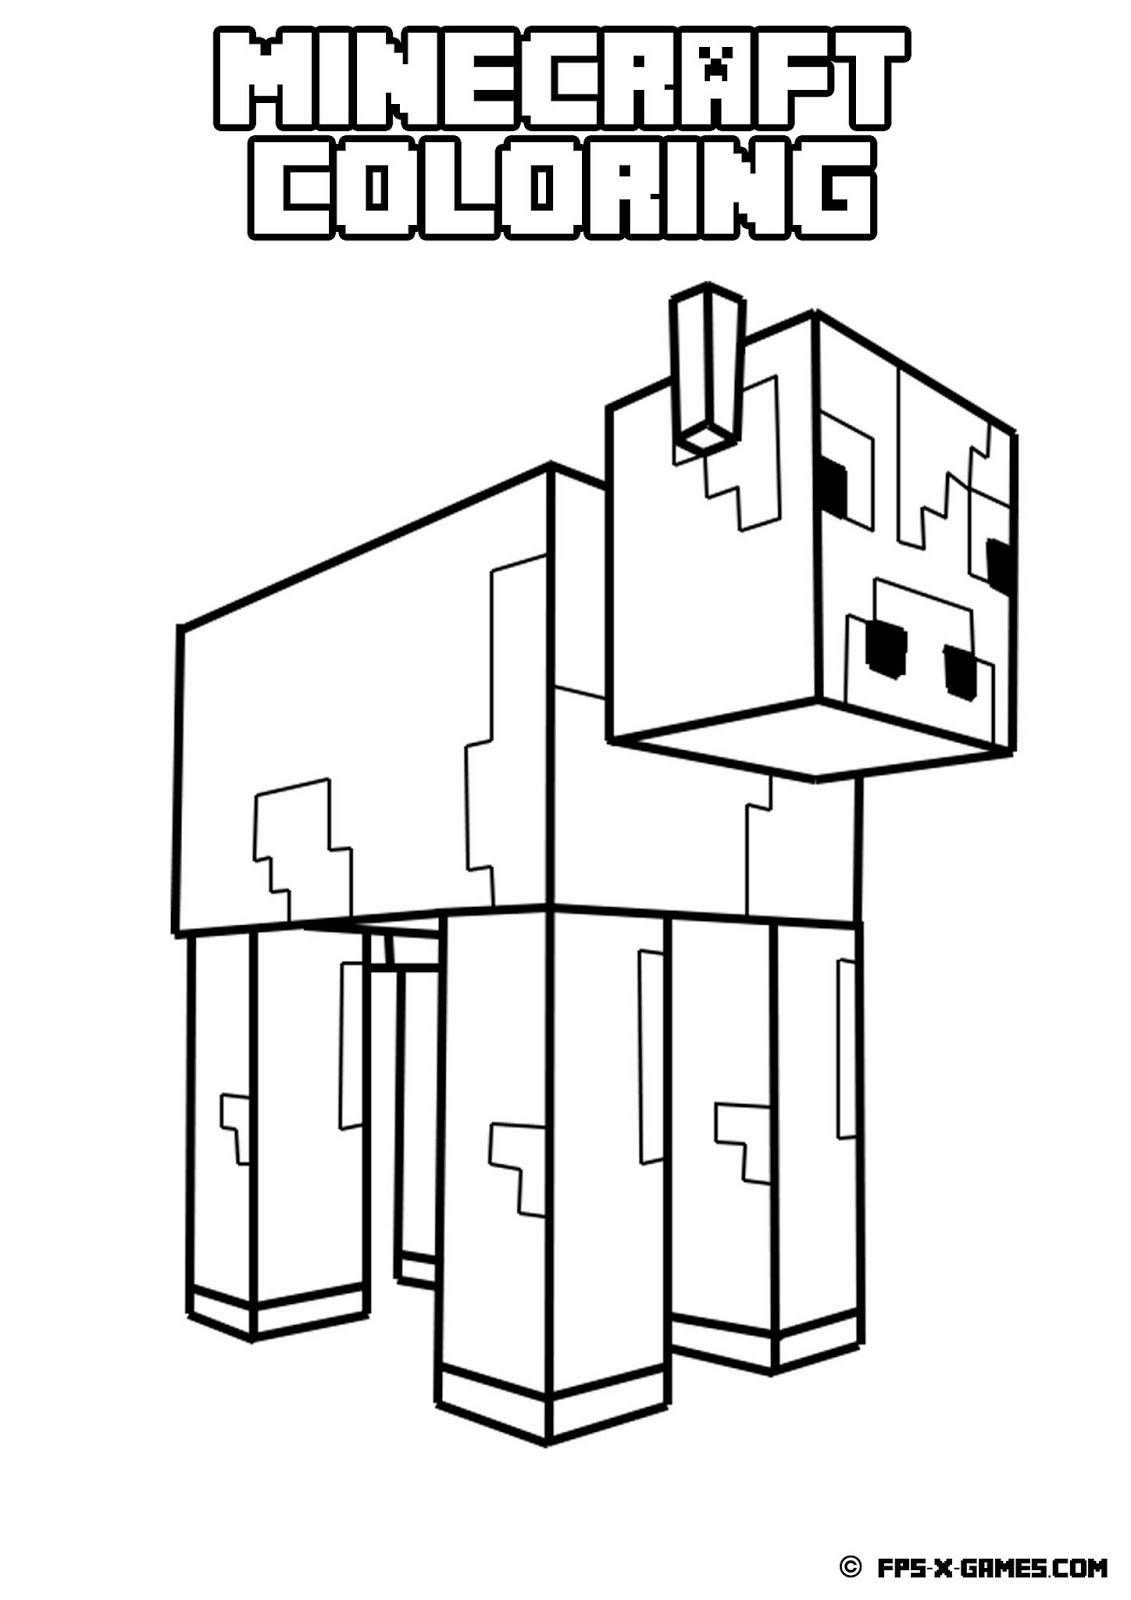 95a88470d8e65fb9737eaa872dab3810 furthermore printable minecraft coloring pages also Free Printable Minecraft Coloring Pages 01 furthermore  in addition  moreover 37fc1ed648e9ced5ec599f7fc93a6ef8 as well minecraft iron golem coloring page moreover minecraft  st y by naturestormgirl d77uxre also  further minecraft alex coloring page besides minecraft wither coloring page. on coloring pages minecraft stampylongnose videos